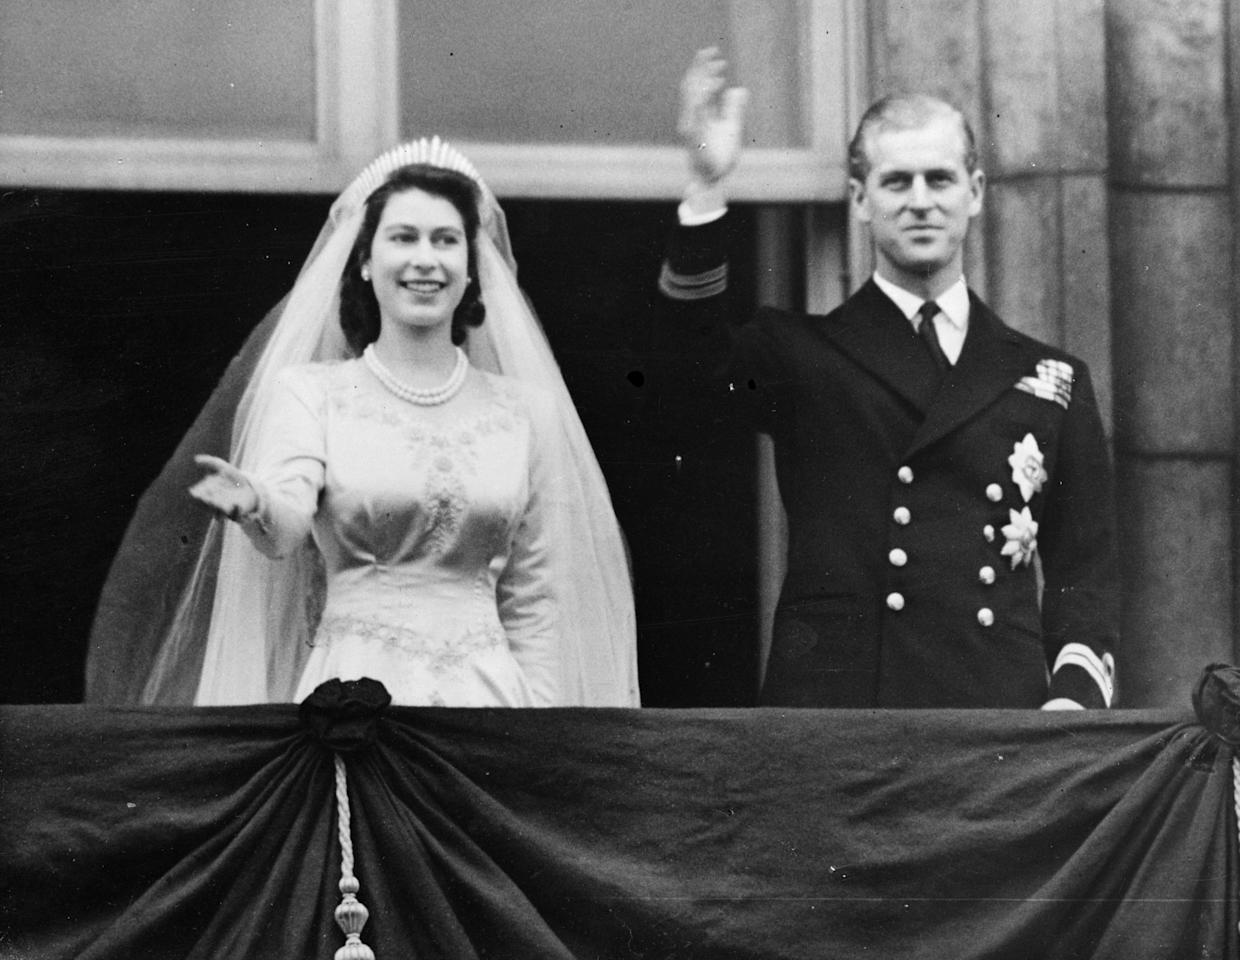 """<p>This month marks <a href=""""http://www.goodhousekeeping.com/life/entertainment/a33996/queen-elizabeth-young-throwback-photo/"""" target=""""_blank"""">Queen Elizabeth II</a> becoming the longest-ruling monarch in Great Britain's history. As of September 9, Her Majesty will have surpassed her great-grandmother Queen Victoria's record rule of 63 years, 216 days. To celebrate, the royal family will present an exhibit of photos of the 89-year-old Queen to commemorate her reign. Take a walk down memory lane and see how a young Elizabeth began making her mark right from the start, plus a few fun facts about your favorite queen.</p>"""